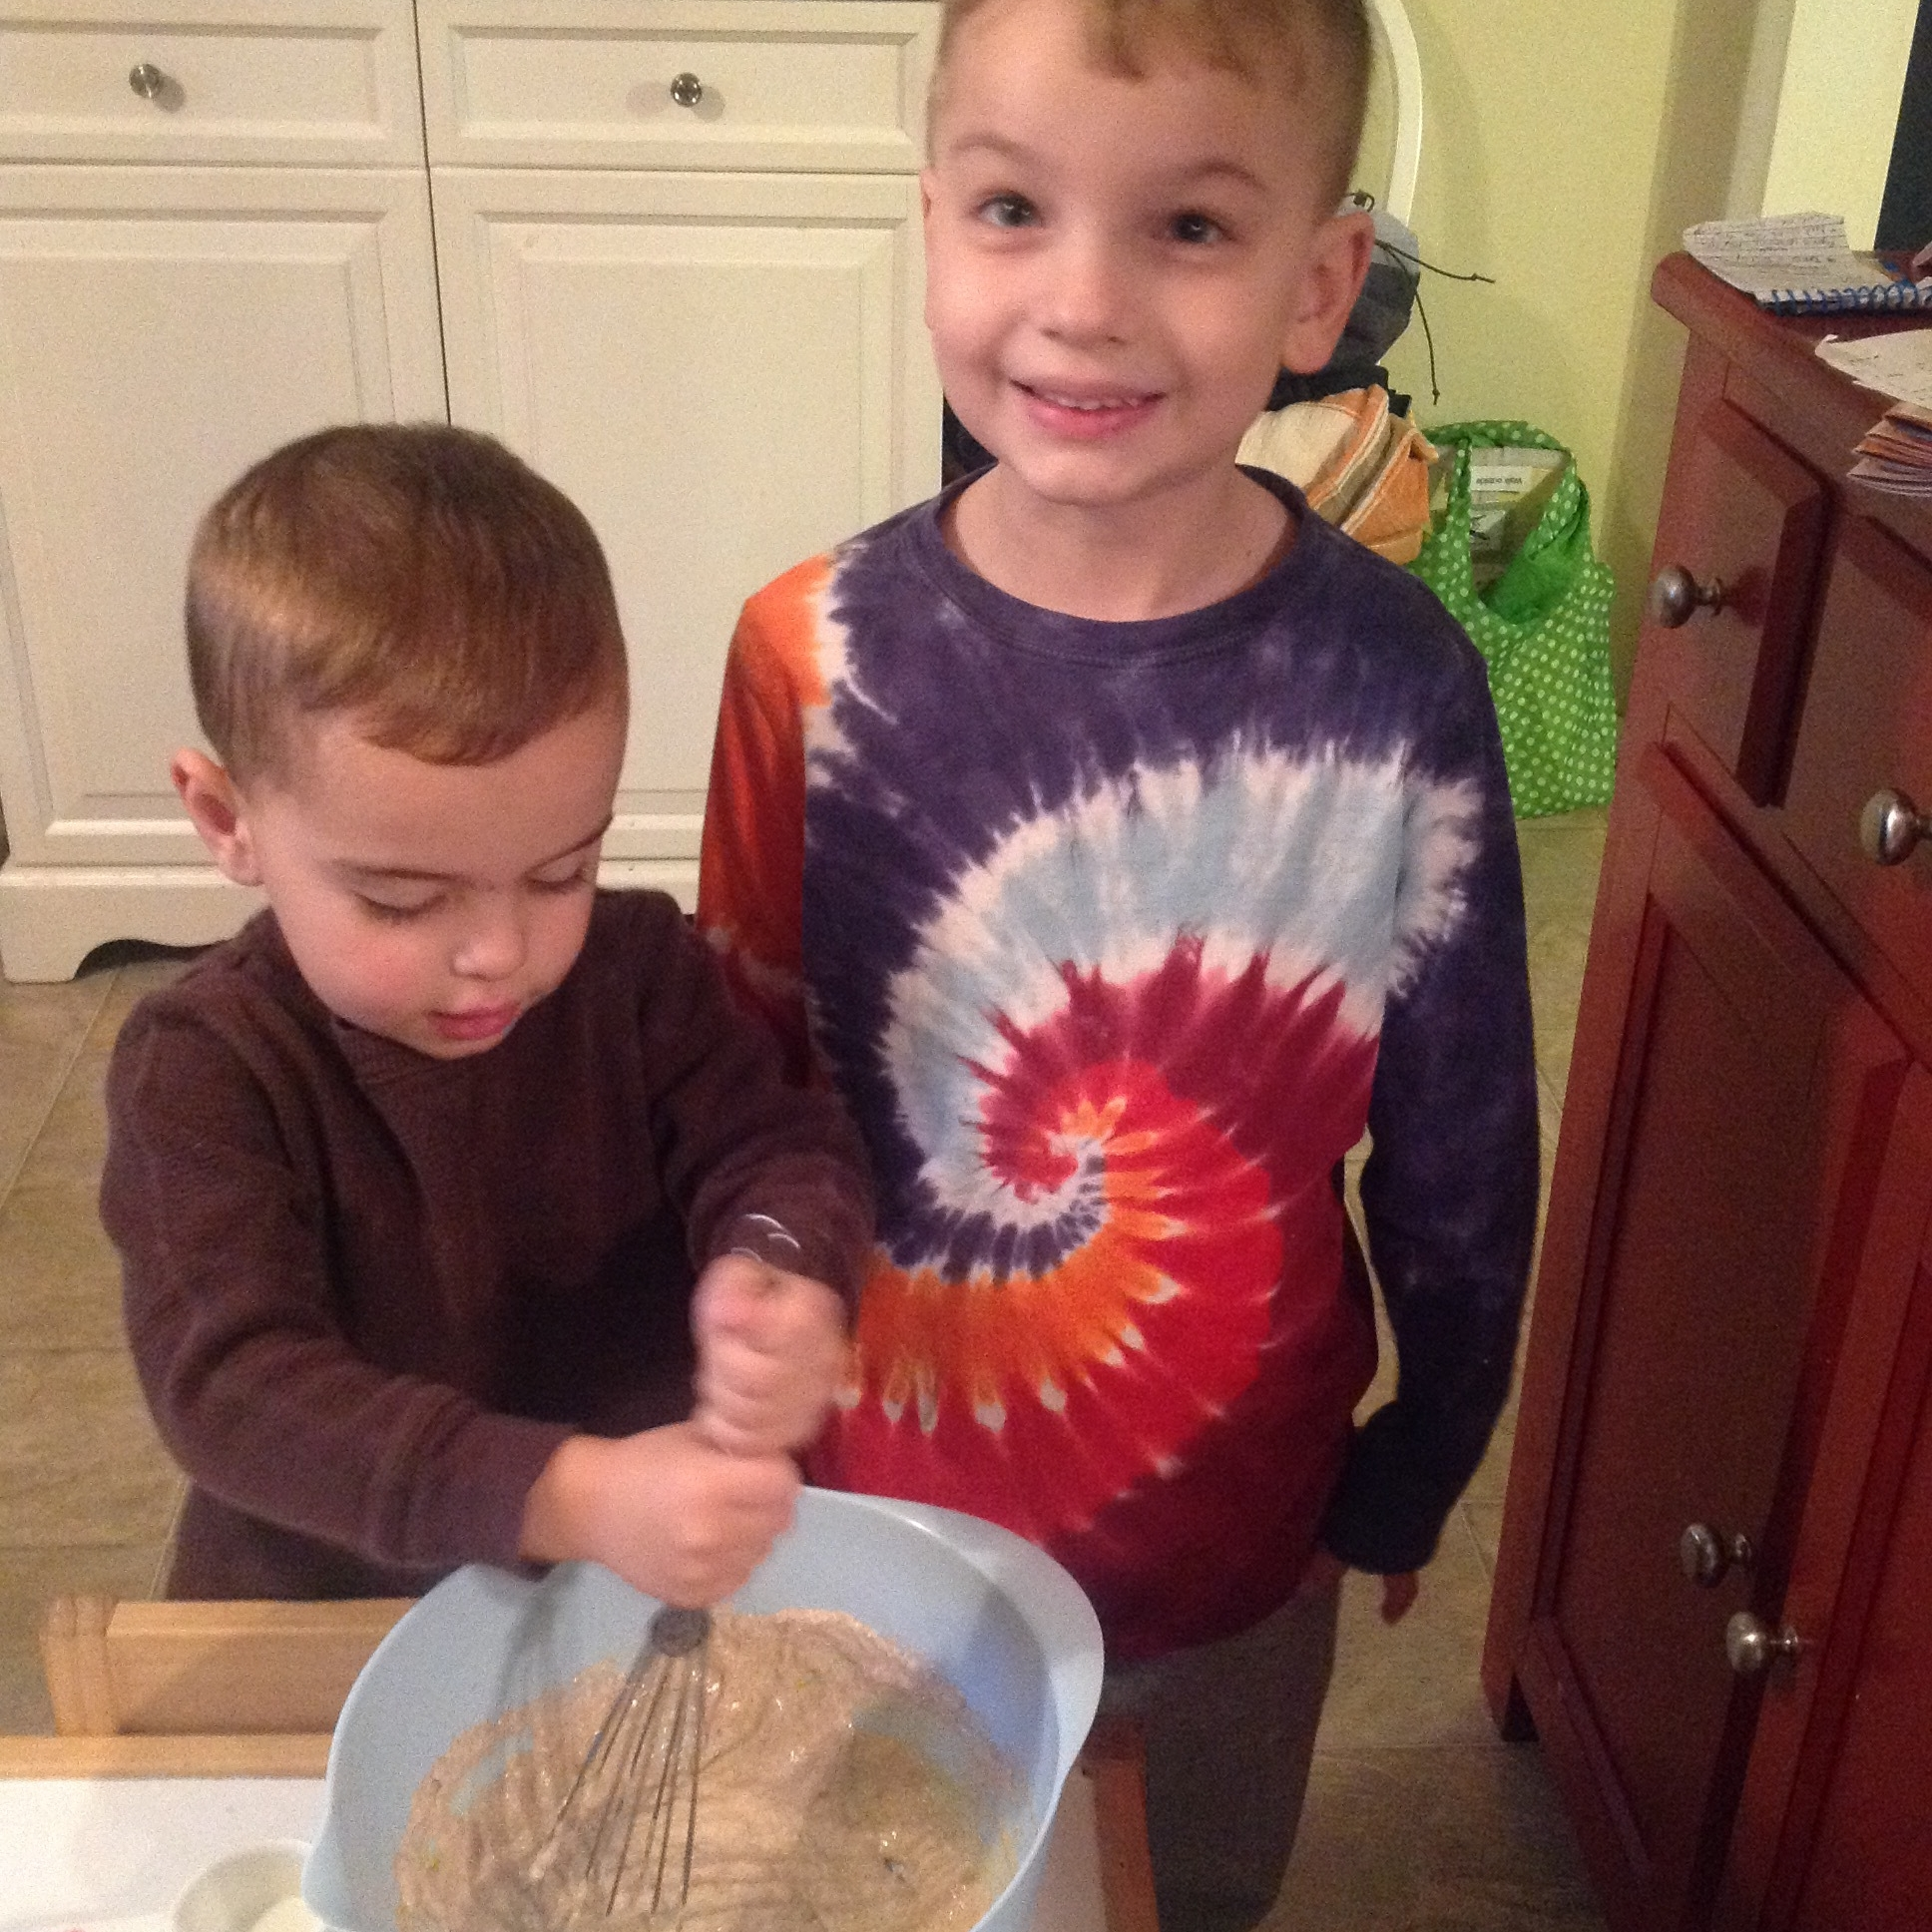 Chefs Patrick and Christian, Ages 3 and 5